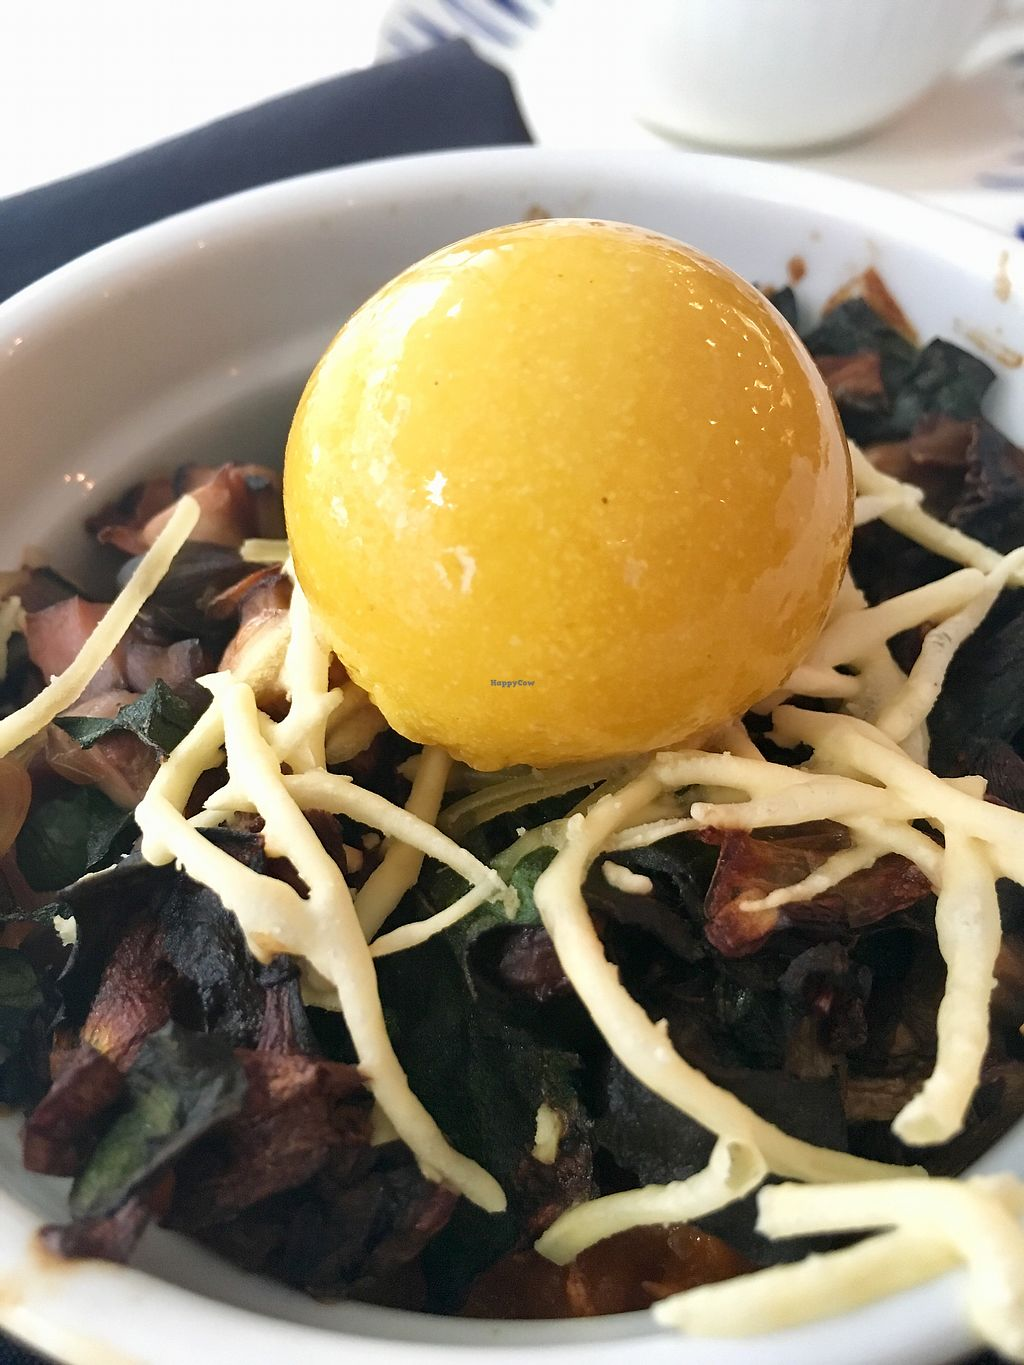 """Photo of Unscripted  by <a href=""""/members/profile/turtleveg"""">turtleveg</a> <br/>vegan coquette with vegg yolk - crazy!  <br/> April 8, 2018  - <a href='/contact/abuse/image/116974/382172'>Report</a>"""